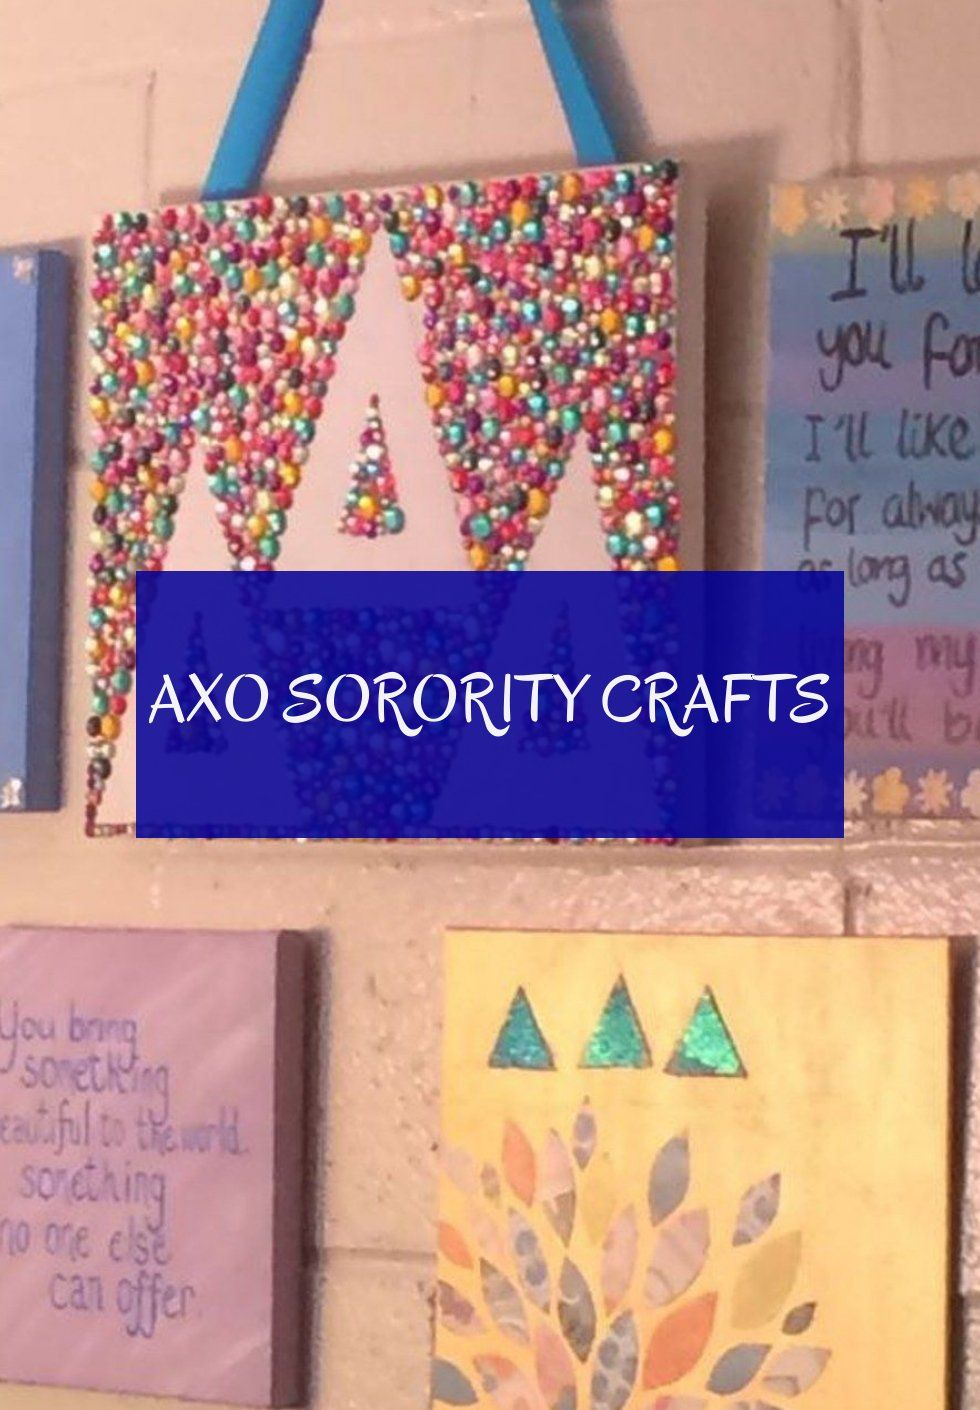 Axo sorority crafts